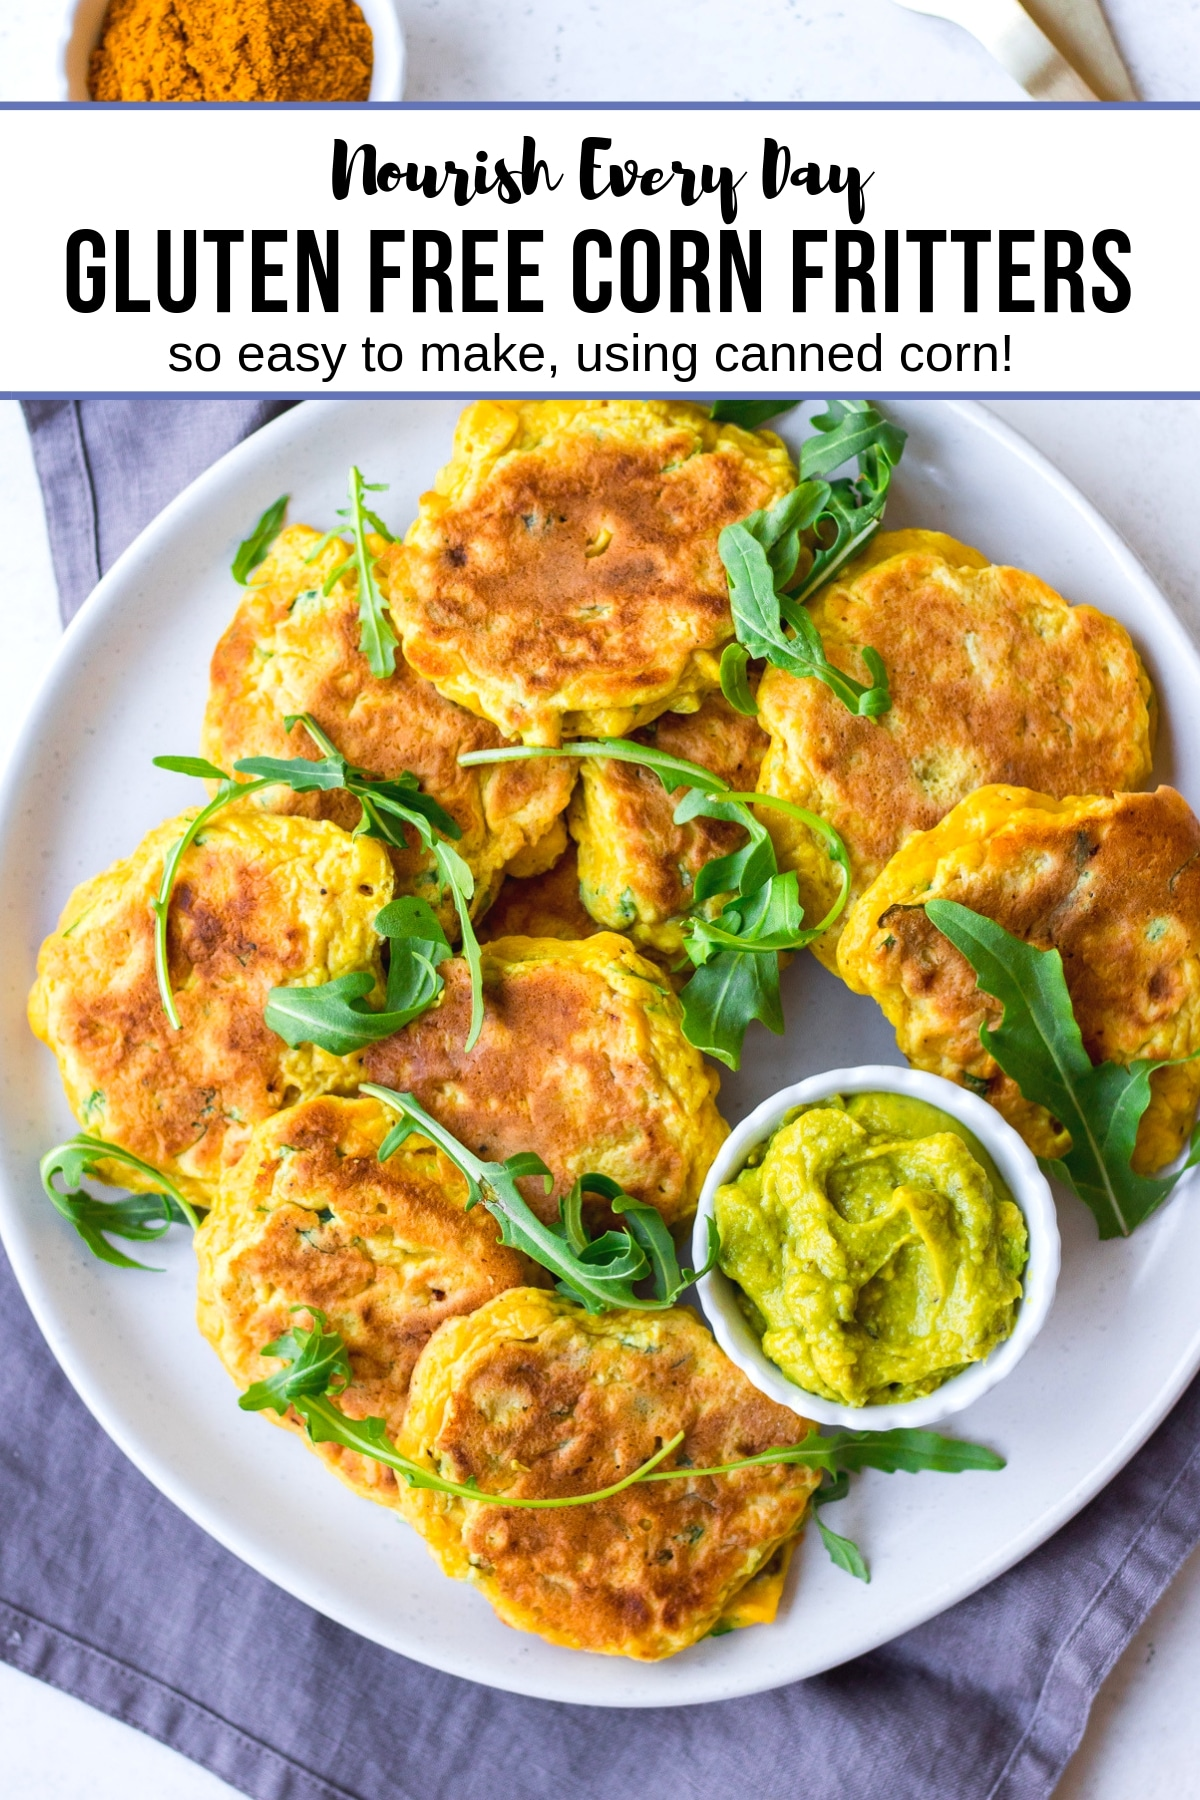 Gluten Free Corn Fritters | Nourish Every Day Blog